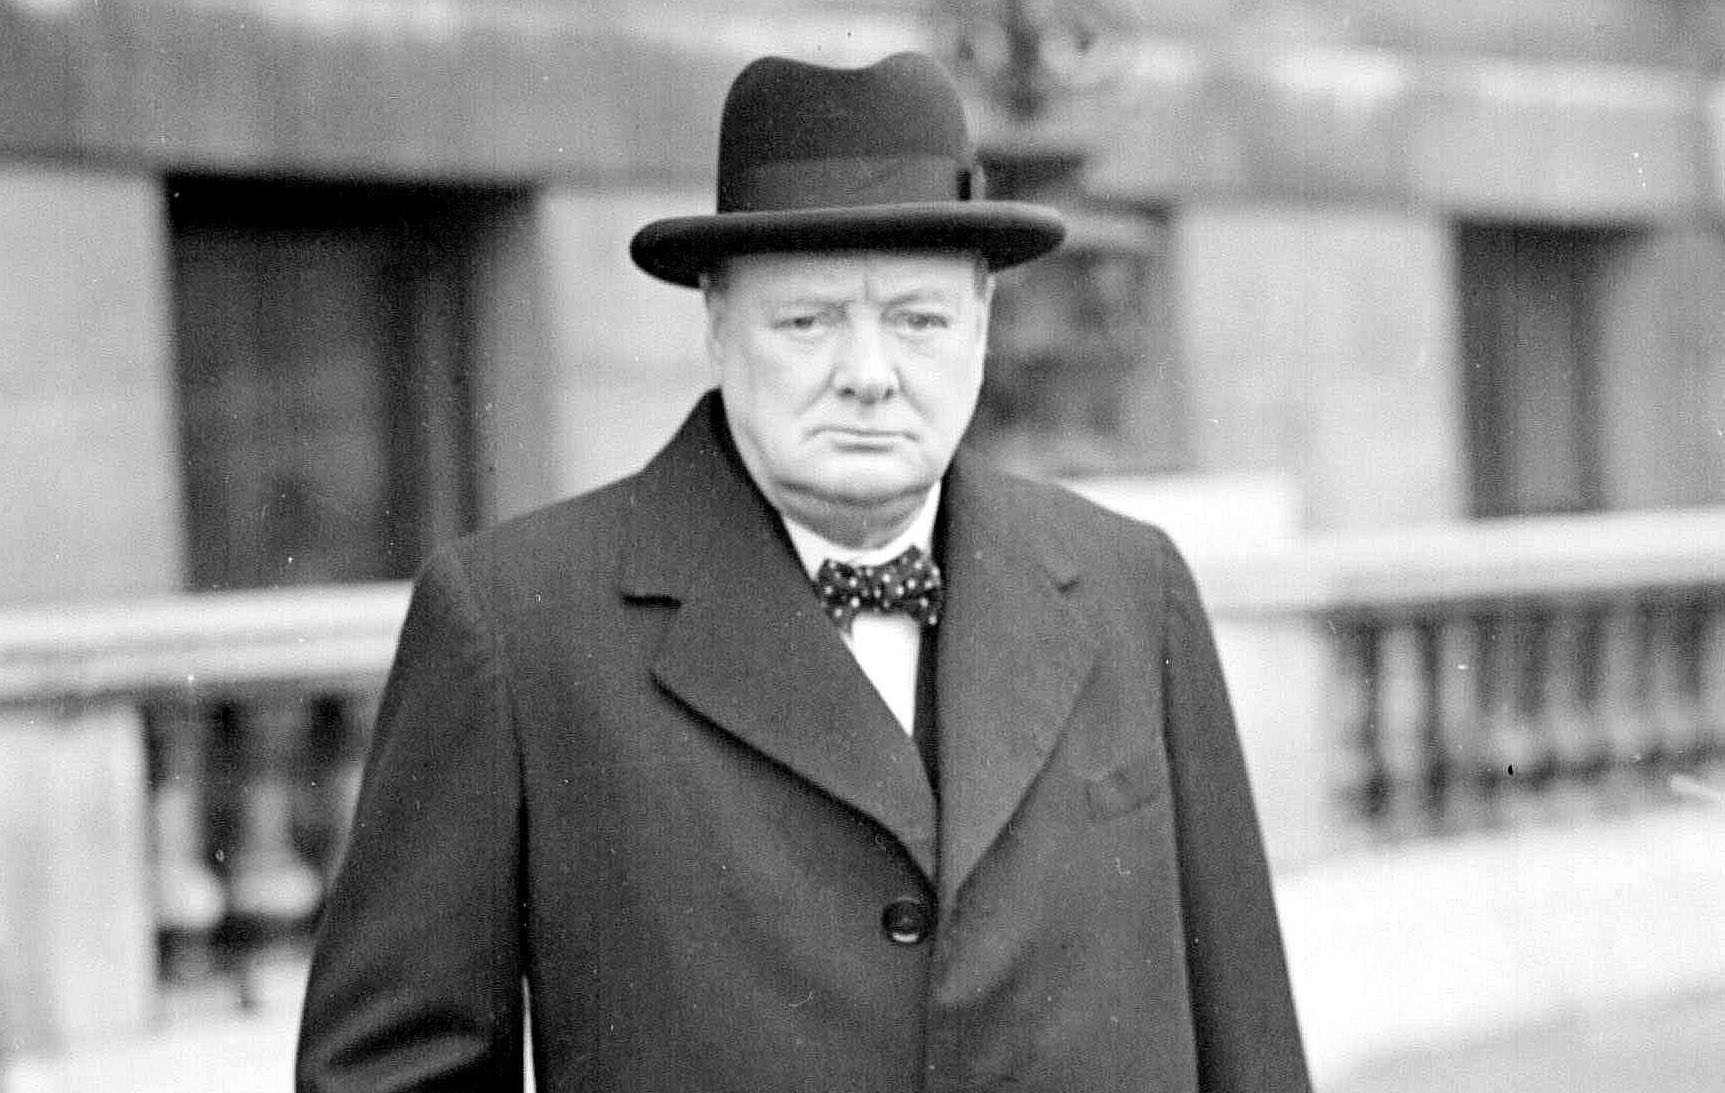 Churchill is regarded by many as the greatest Briton ever, but for some he remains an intensely controversial figure